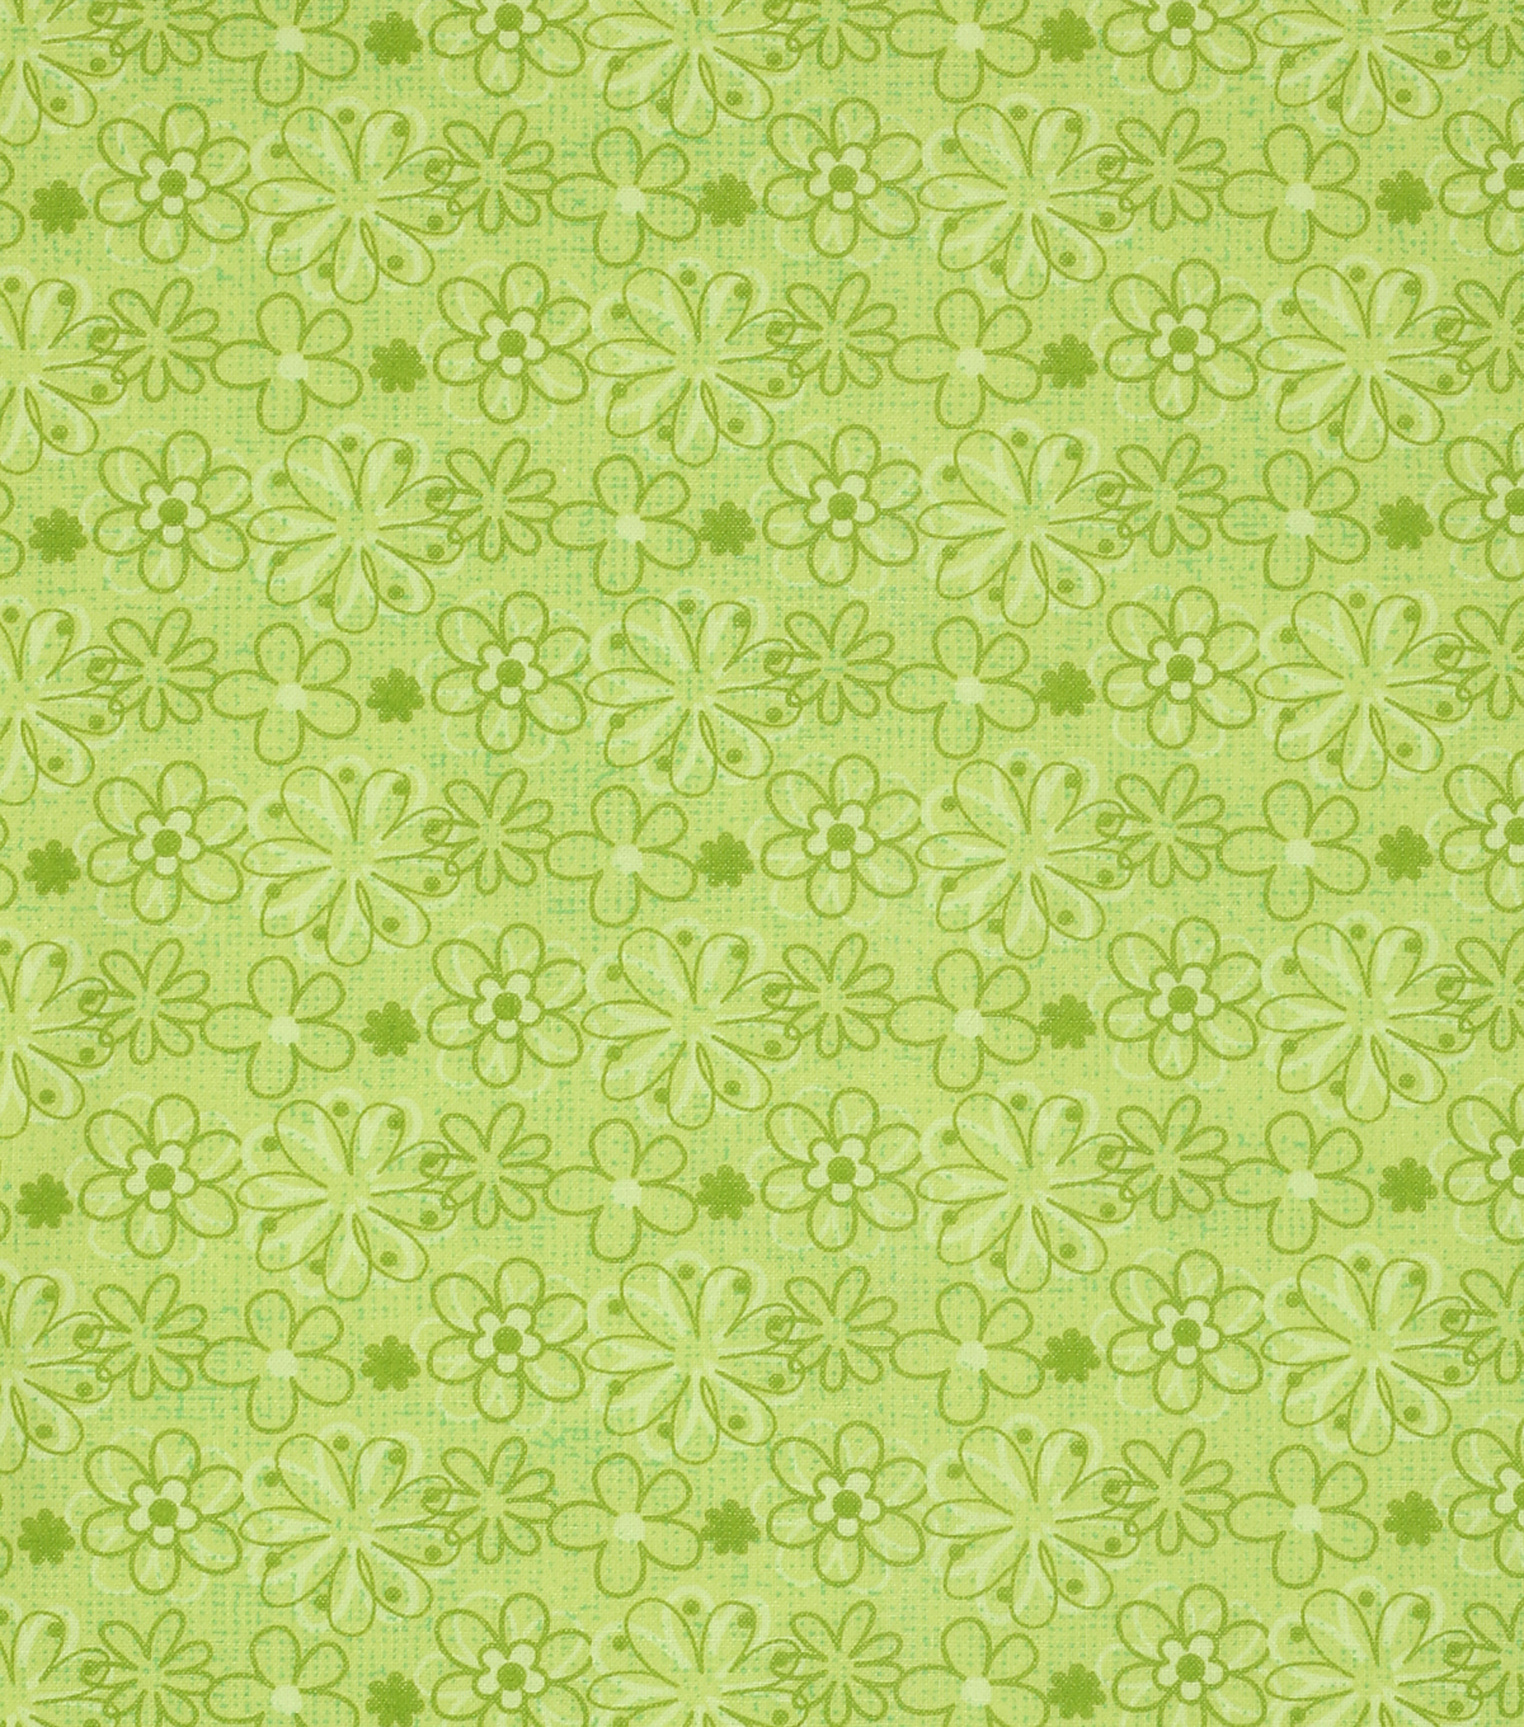 Keepsake Calico Cotton Fabric -Lime Floral